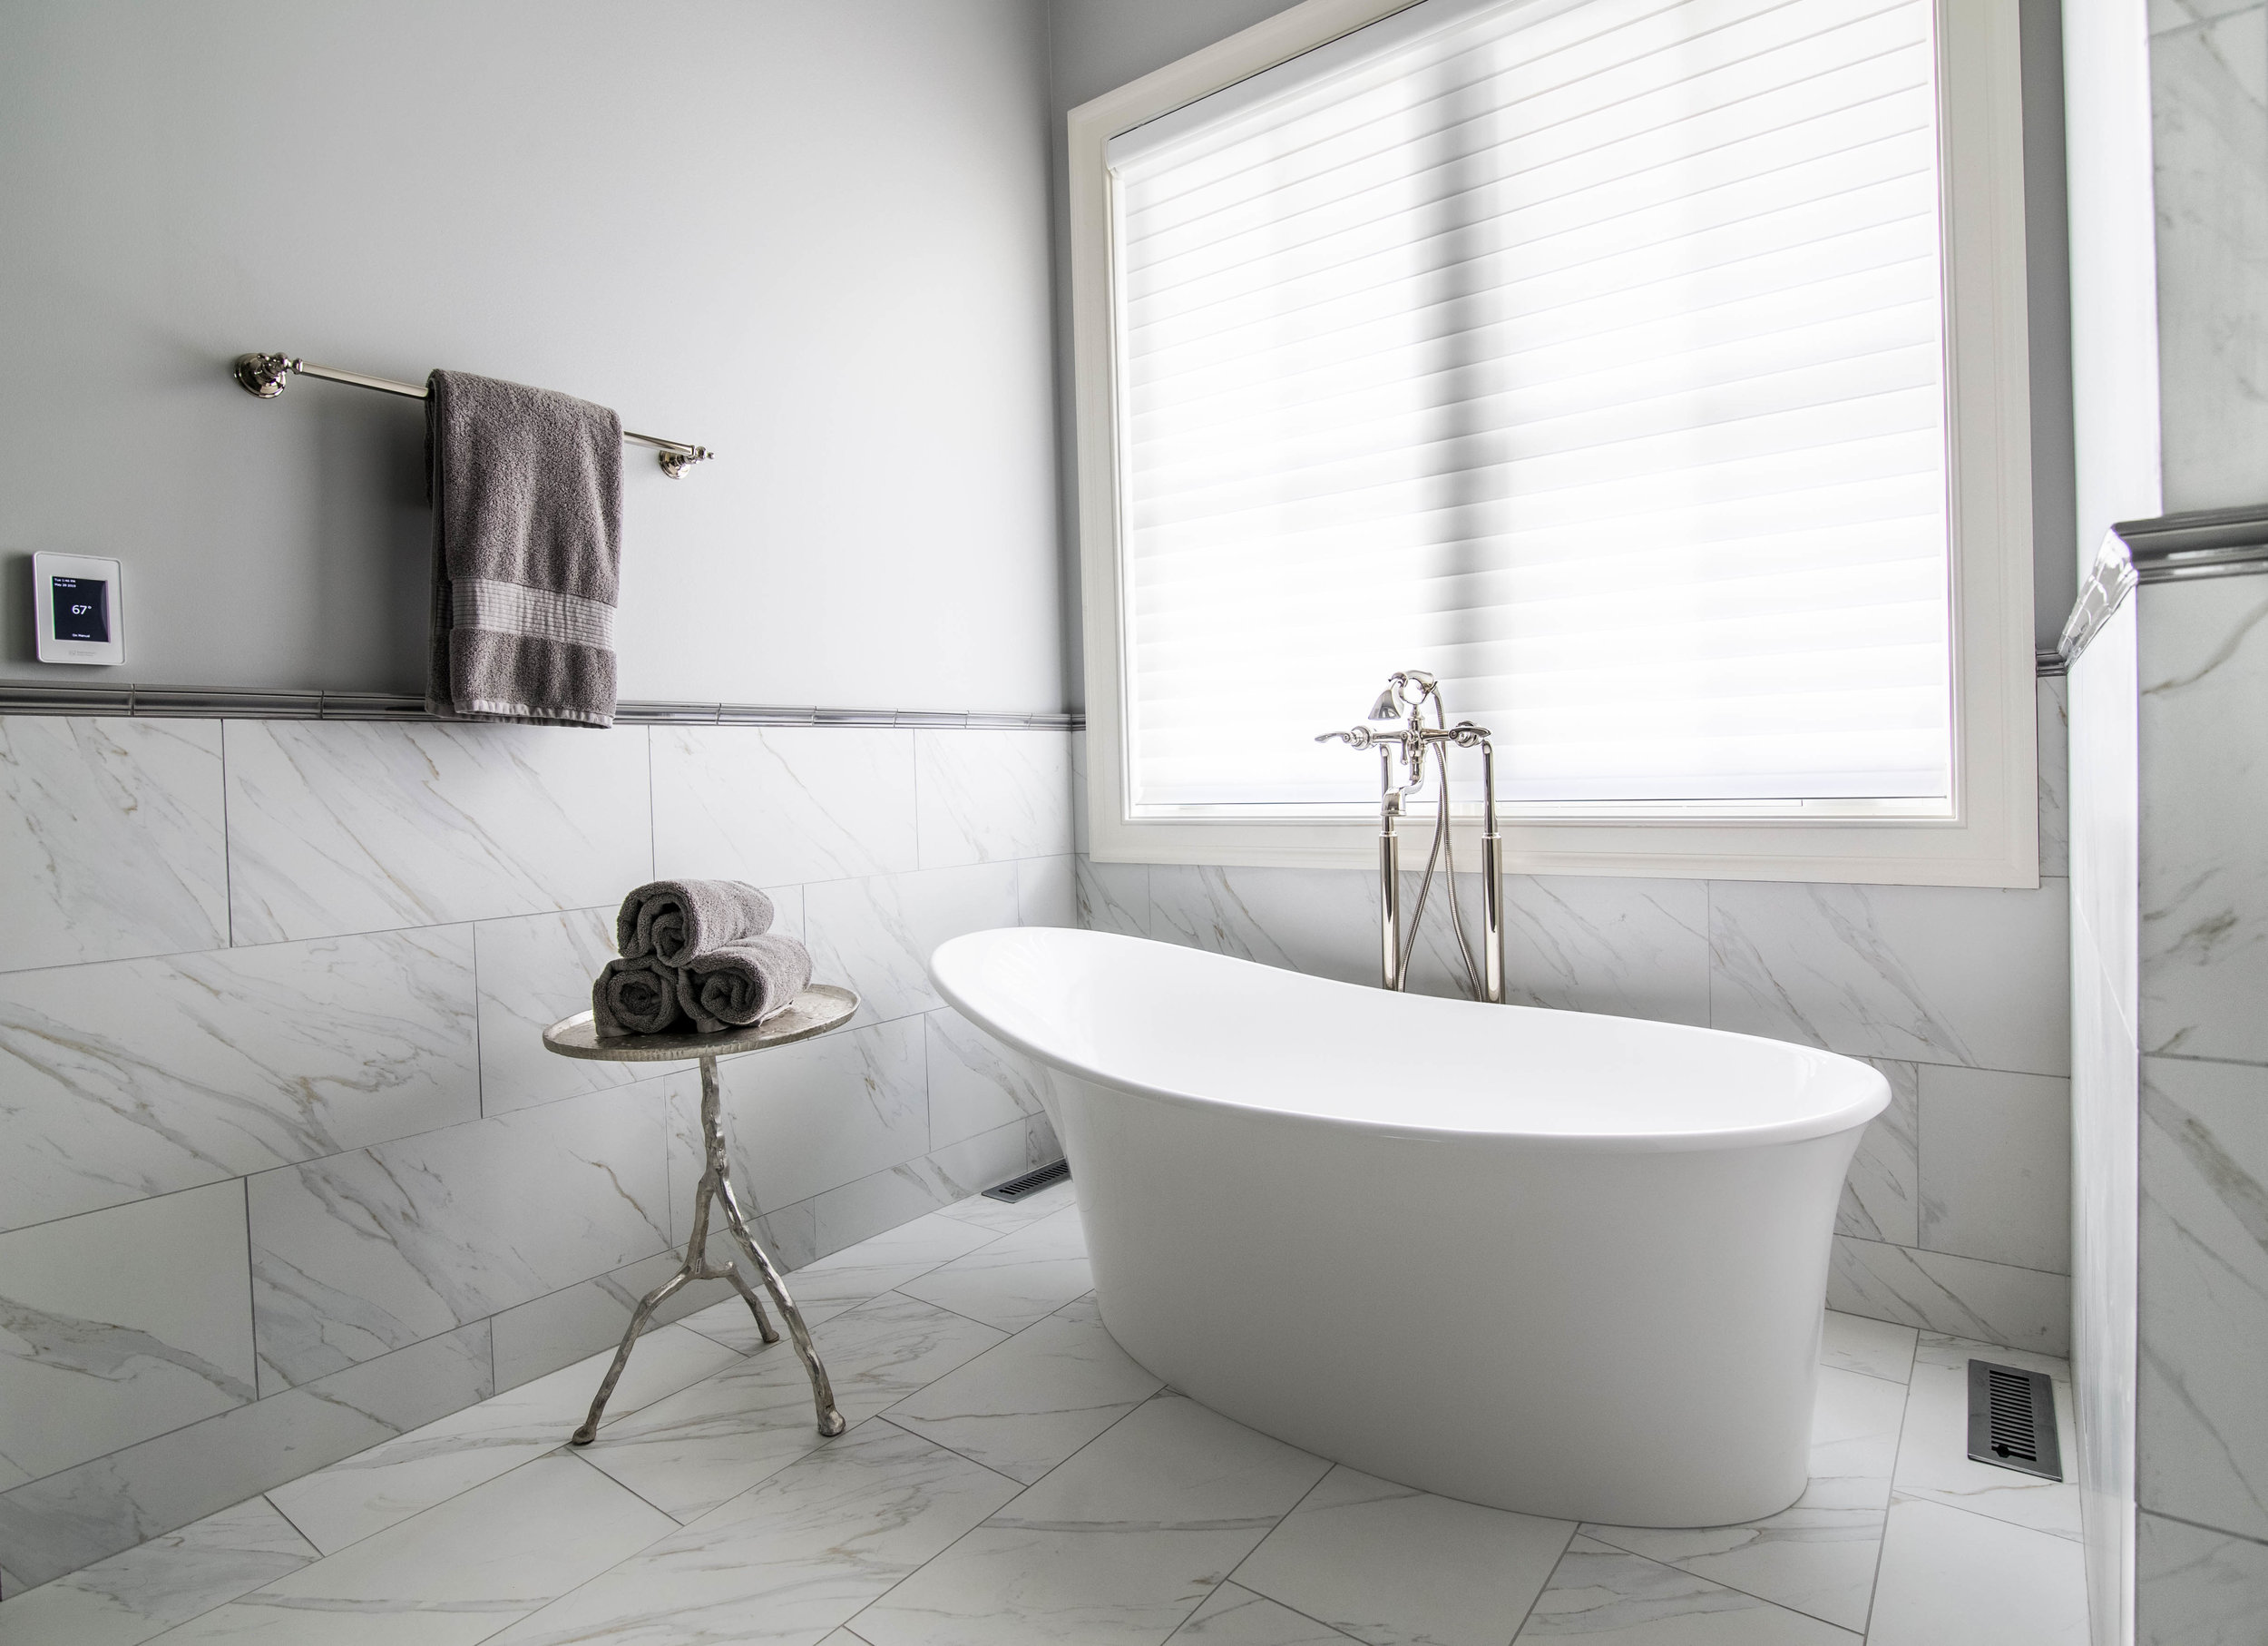 2017 - Best of DesignHouzz.comMost Popular PhotosColumbus, OHContractor of the YearNational Association of the Remodeling Industry (NARI)National WinnerResidential Interior Element $30,000 and OverContractor of the YearNational Association of the Remodeling Industry (NARI)Regional Winner (East Central)Residential Bath Over $100,000Contractor of the YearNational Association of the Remodeling Industry (NARI)Regional Winner (East Central)Residential Interior Element $30,000 and OverContractor of the YearNational Association of the Remodeling Industry (NARI)Central Ohio ChapterResidential Kitchen Over $120,000Contractor of the YearNational Association of the Remodeling Industry (NARI)Central Ohio ChapterResidential Residential Detached StructureACE Award for Achievement in Consumer ExcellenceNational Association of the Remodeling Industry (NARI)